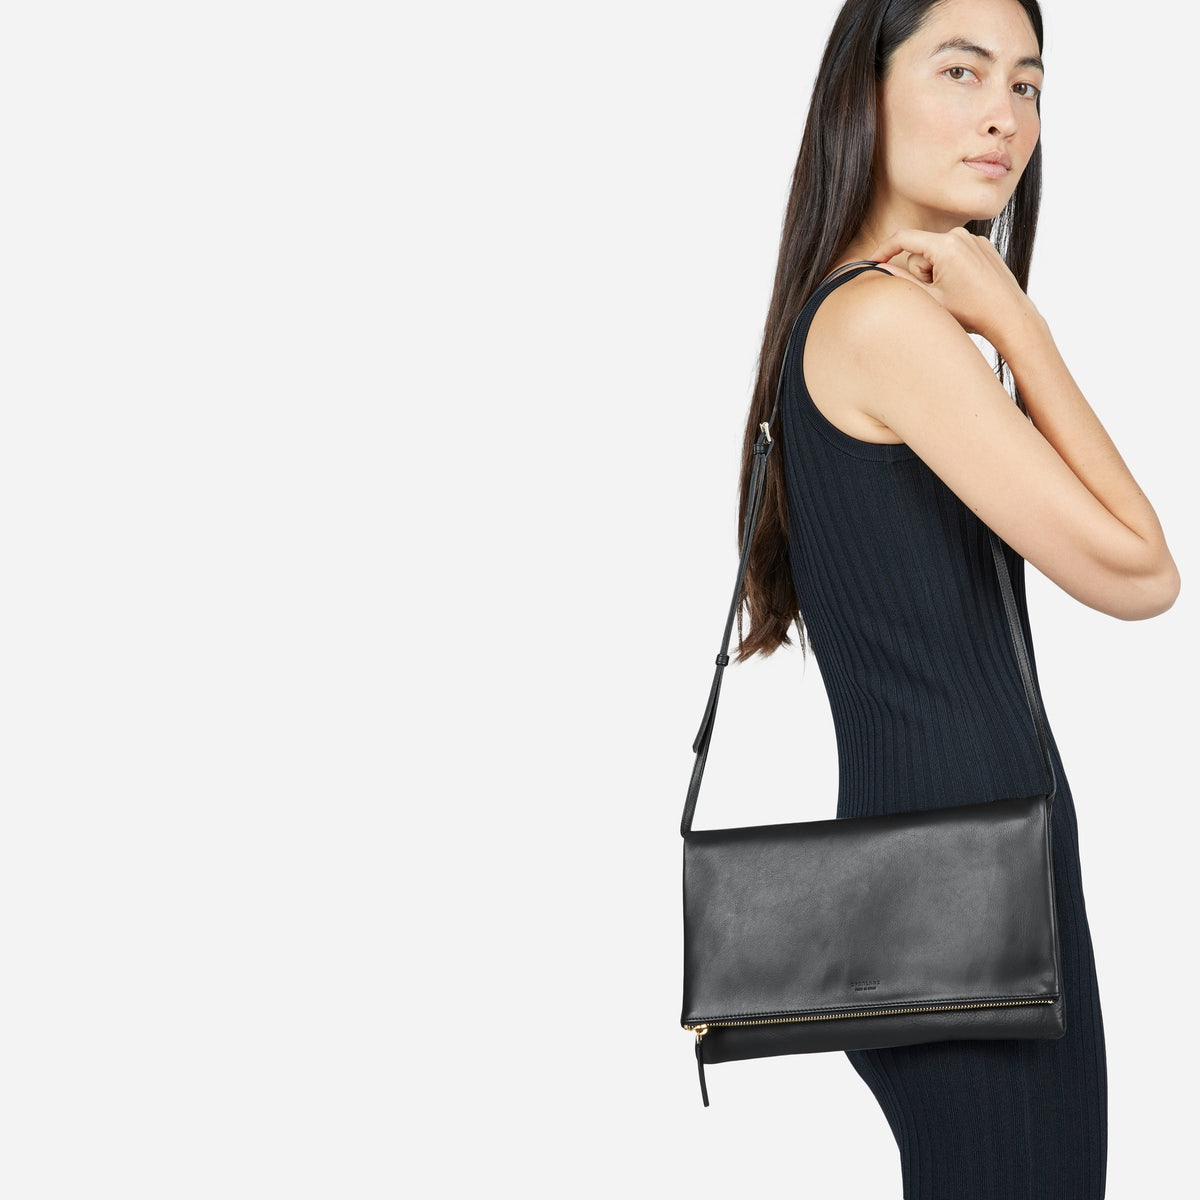 Where Can I Find a Nice Black Leather Bag That Won't Fall Apart in a Year?